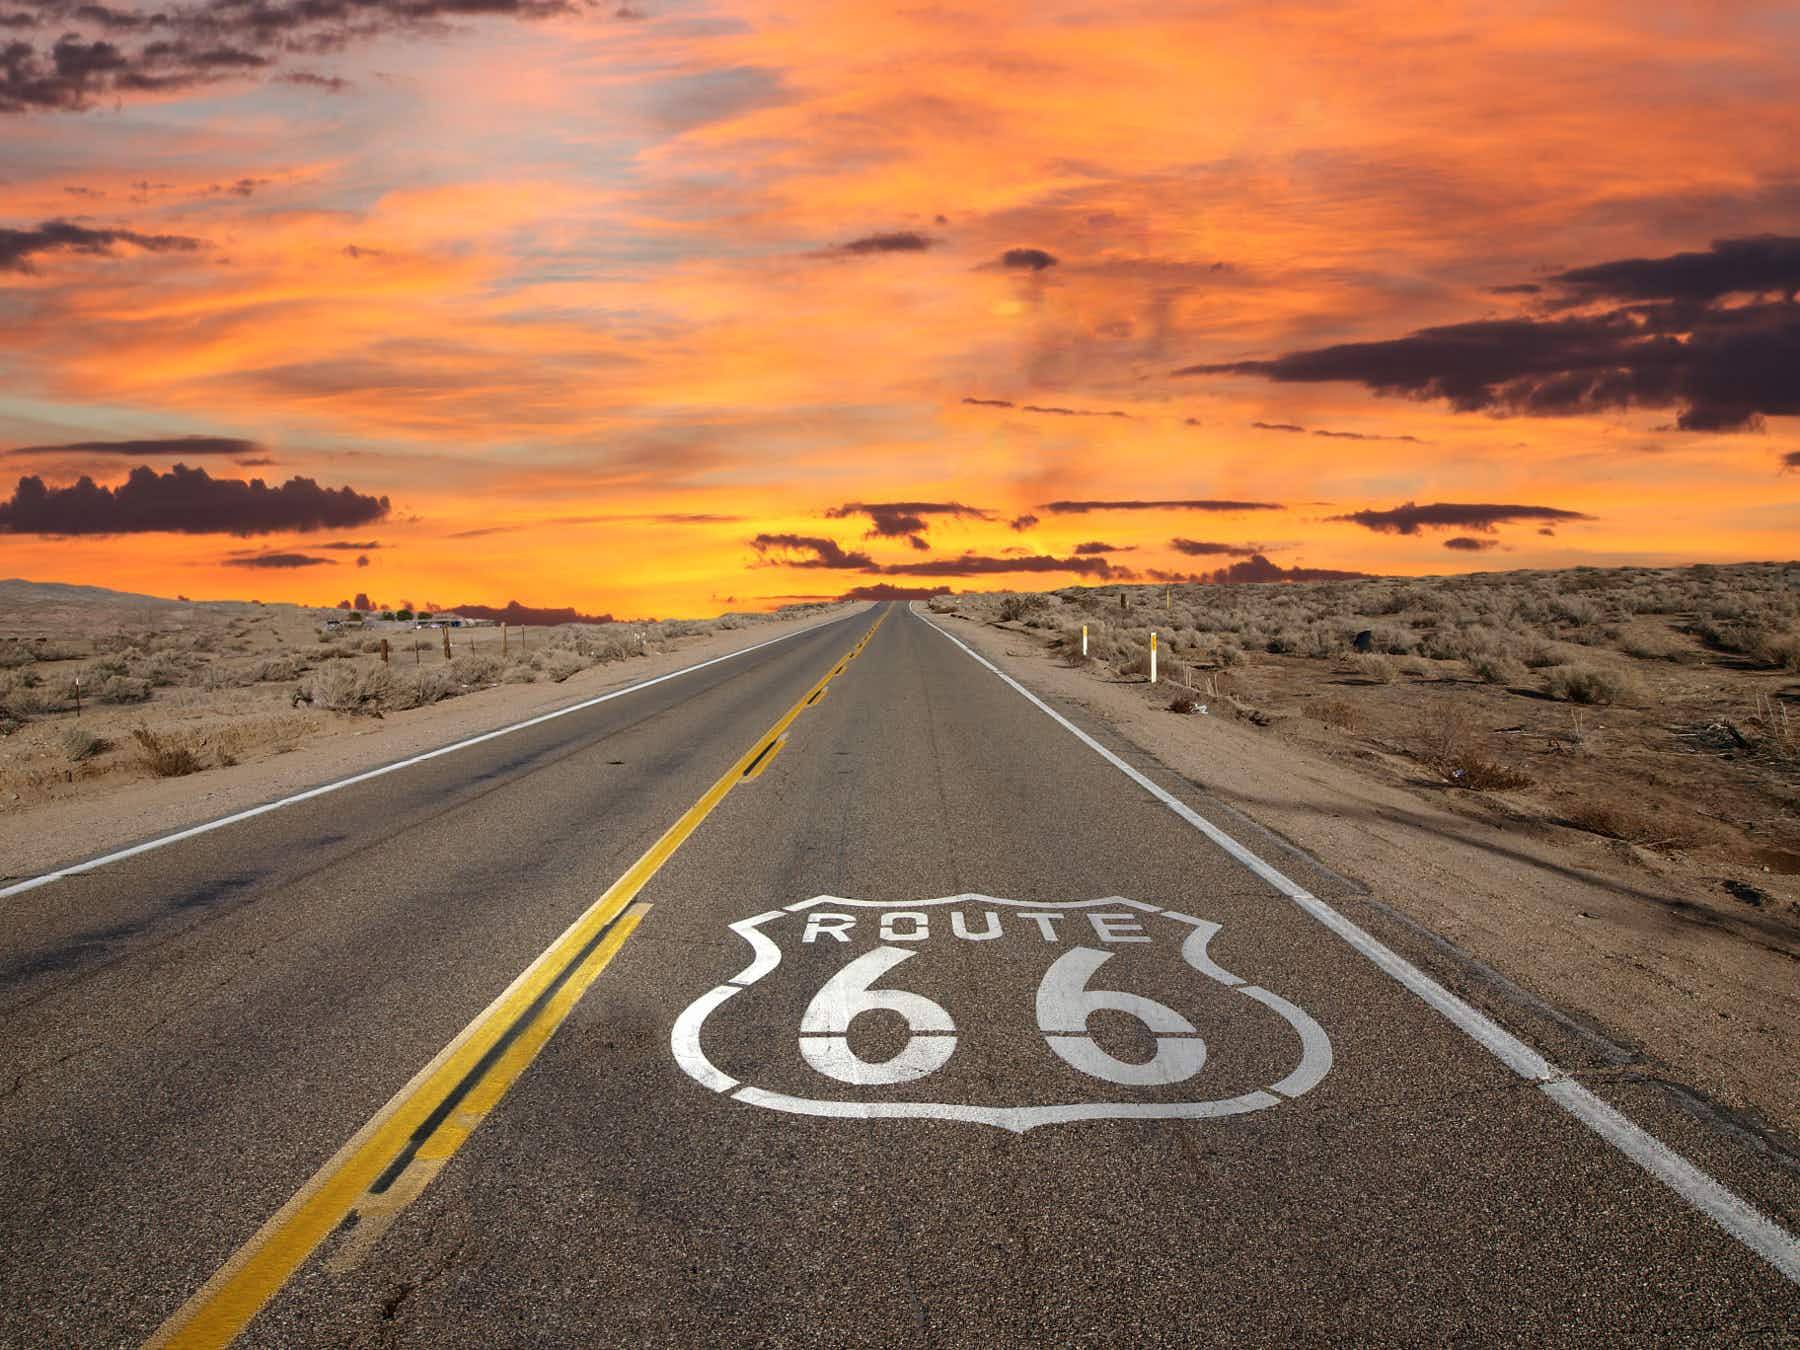 Is this the end of Route 66 as we know it? Campaigns are underway to preserve the iconic highway